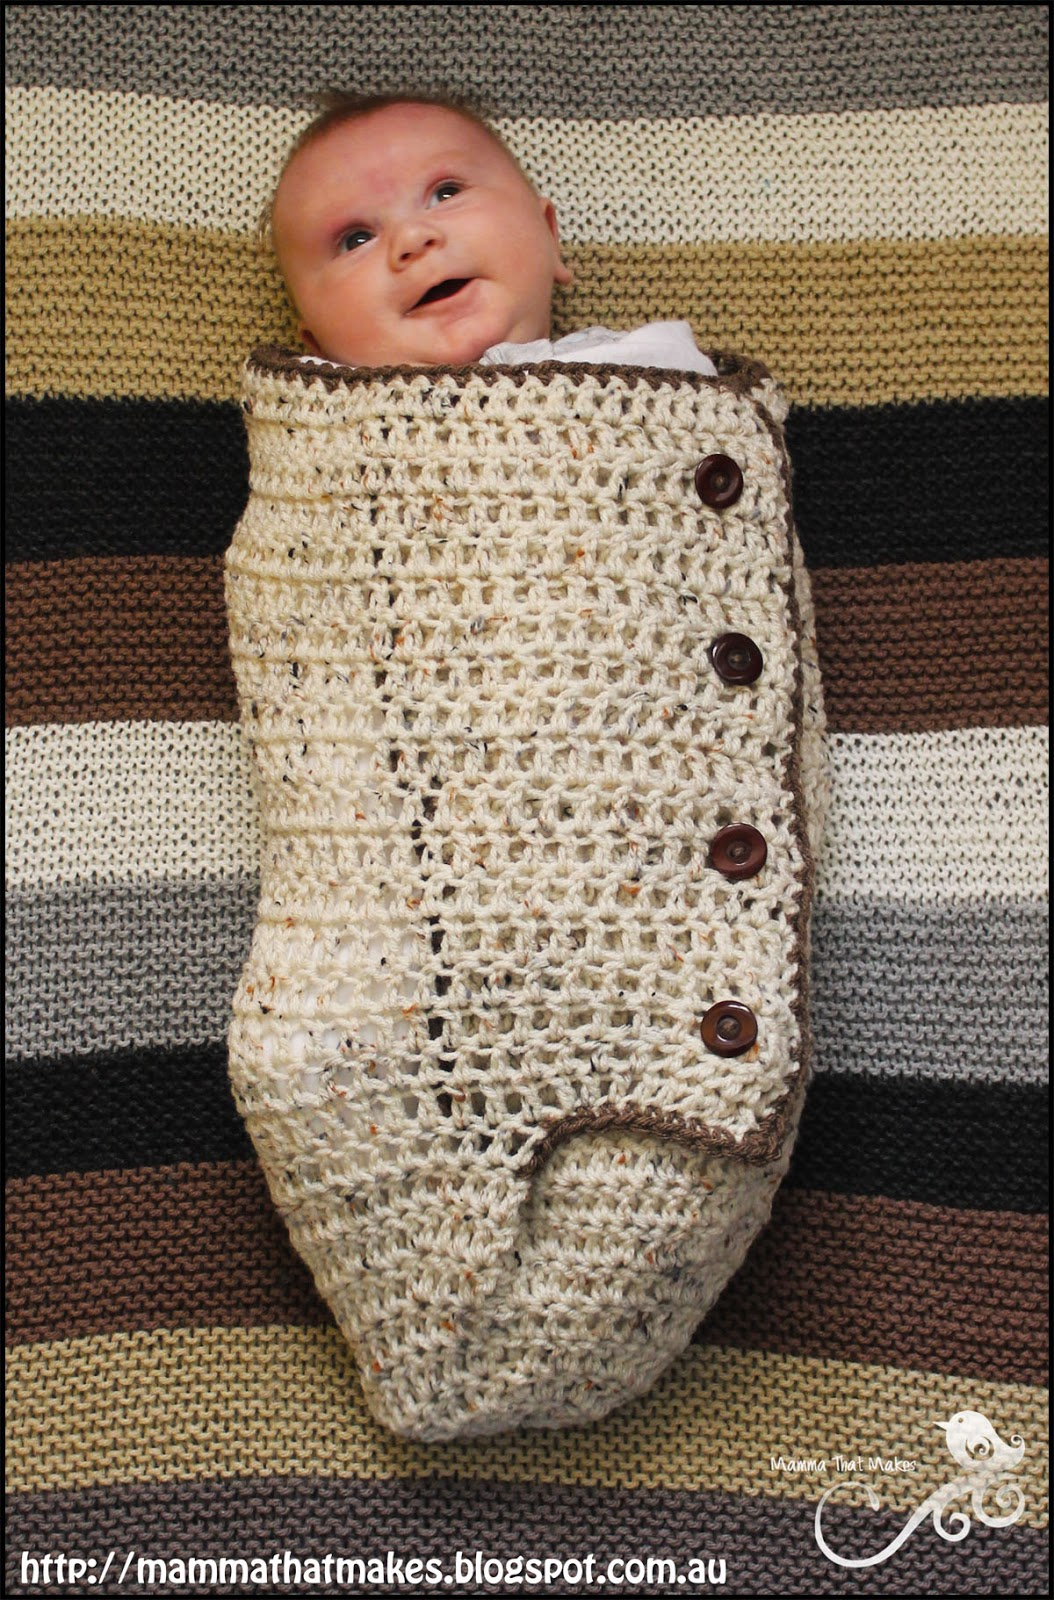 Mamma That Makes: Snuggle Cuddle Cocoon Resized - Free Newborn ...